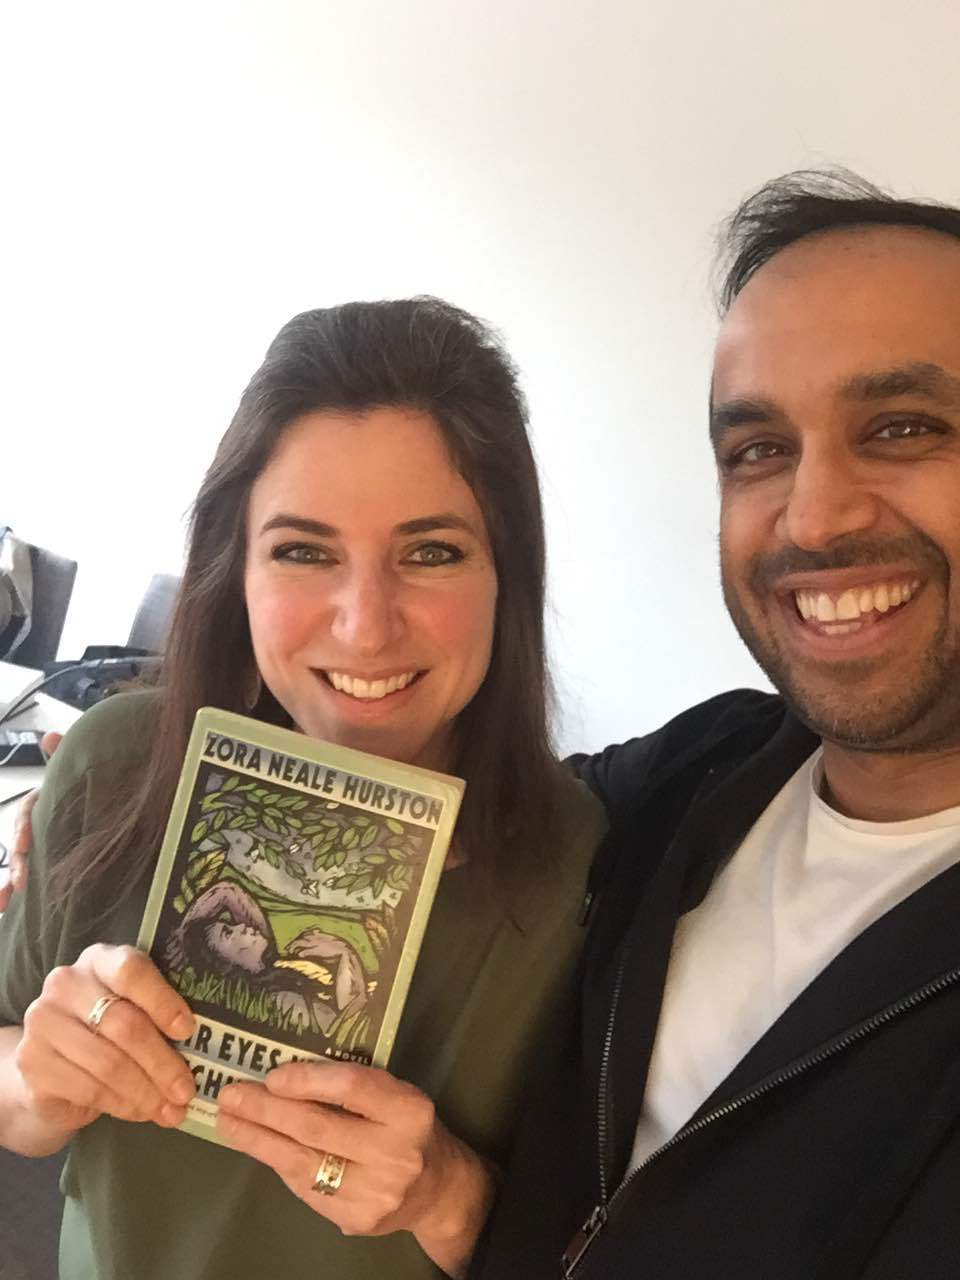 Jesse and me posing with one of her three most formative books (Spoiler alert!).